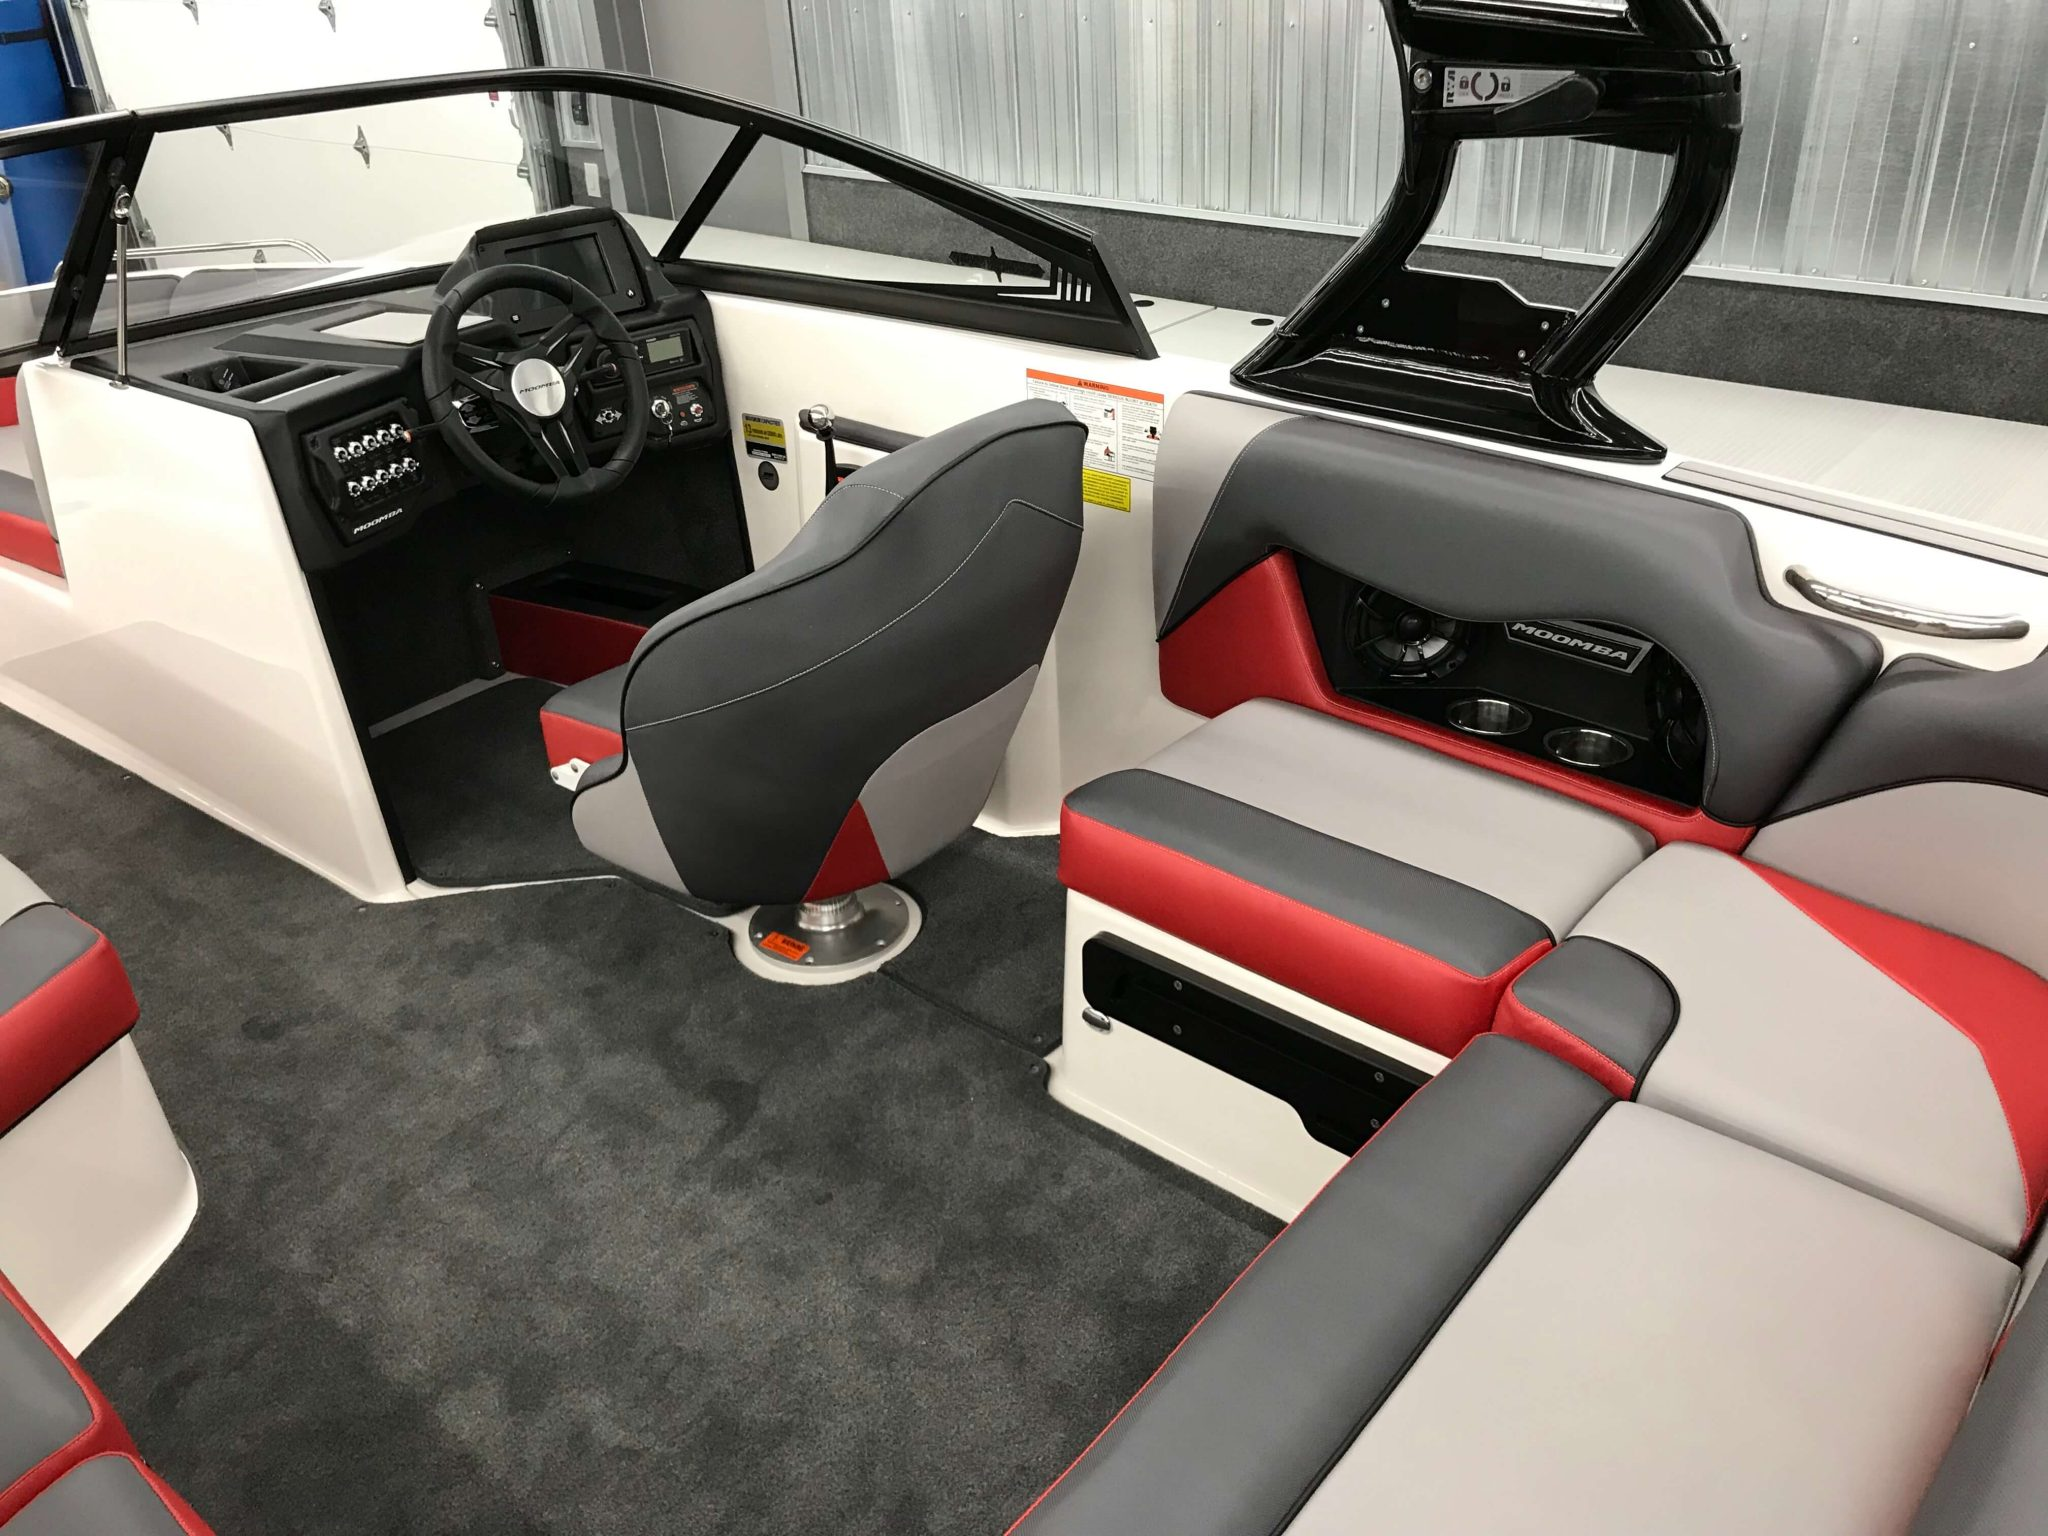 2019 Moomba Mondo Interior Seating 2